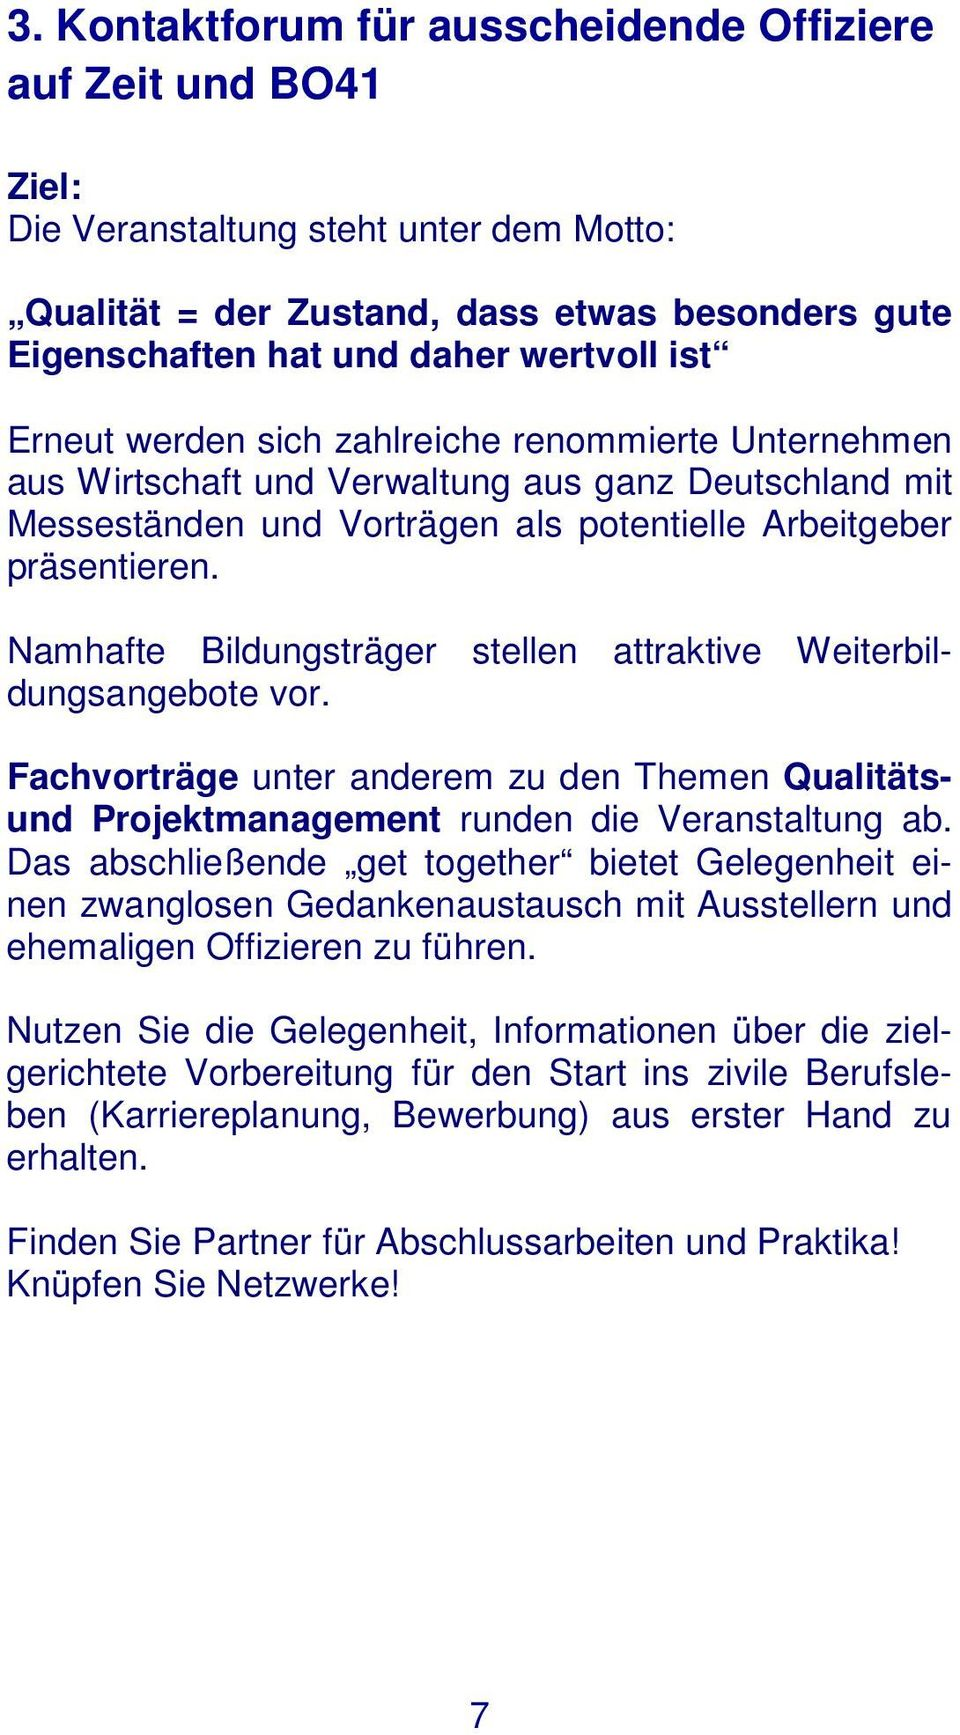 Tolle Bankverbindung Offizier Lebenslauf Fotos - Entry Level Resume ...